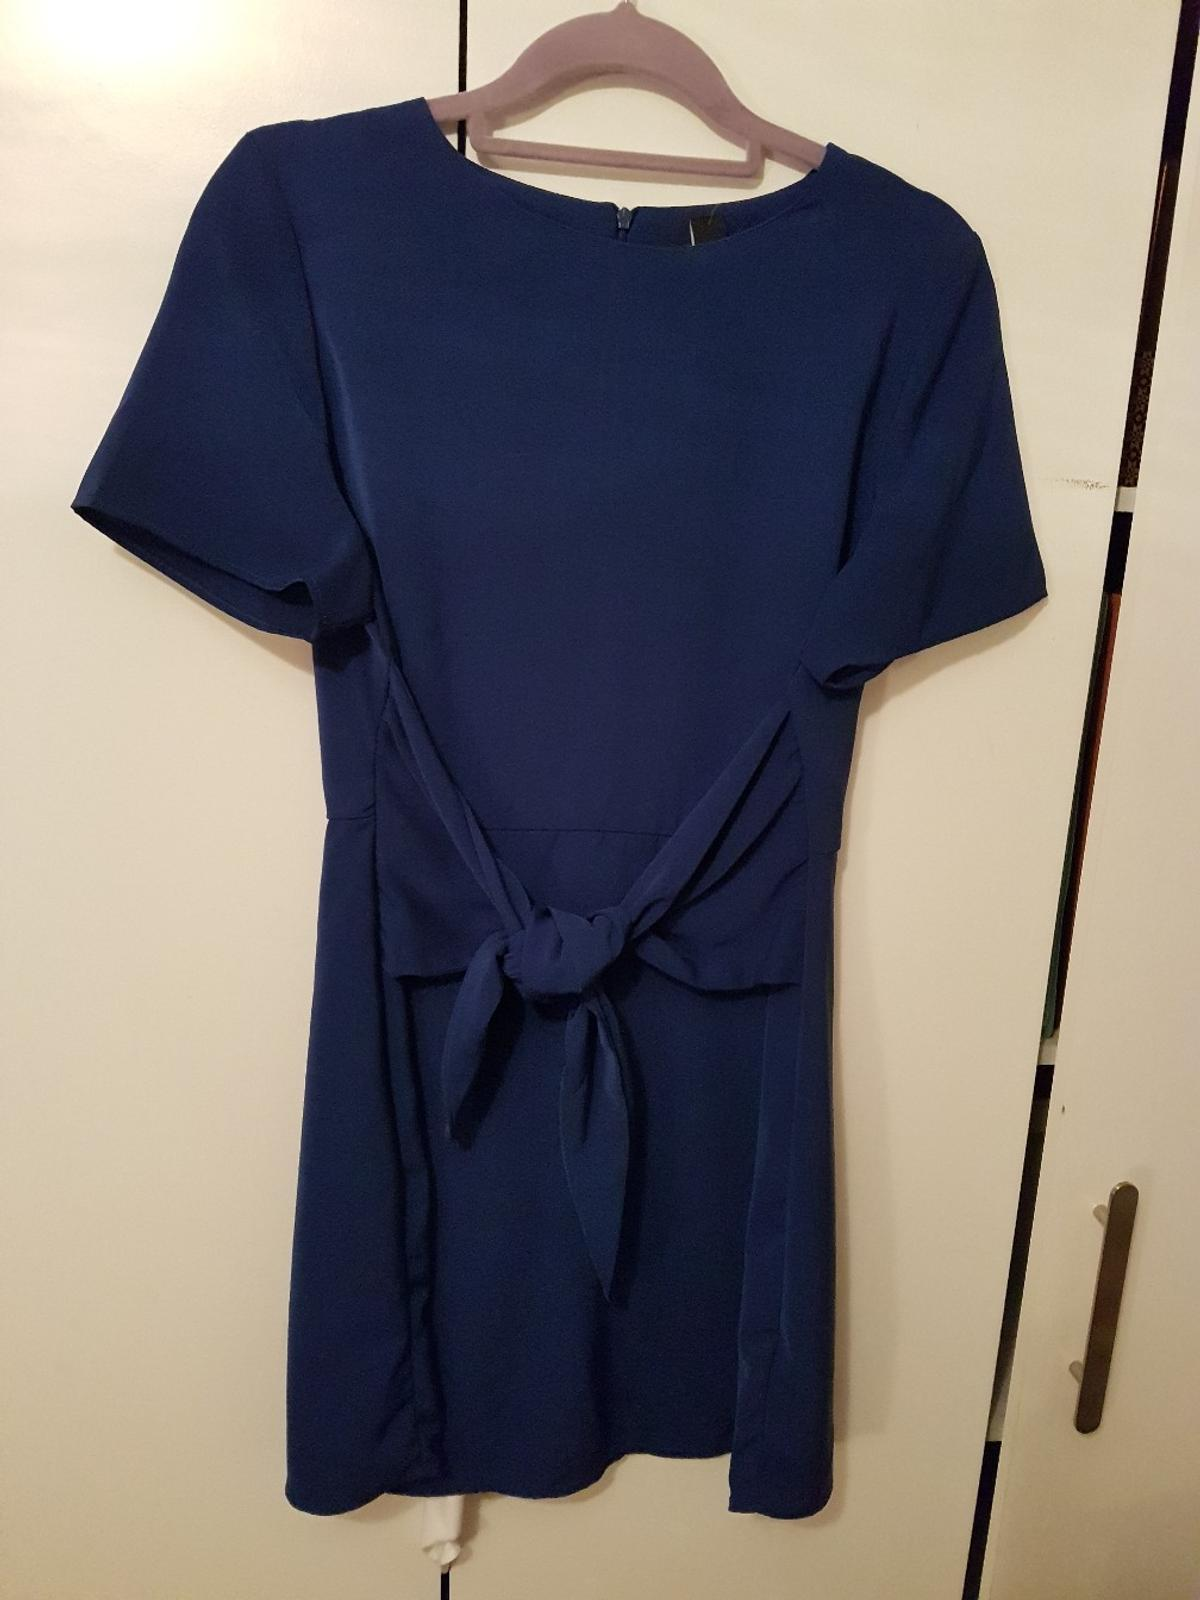 Electric blue new look dress. Petite size 14. Brand new- tags on. Can deliver.